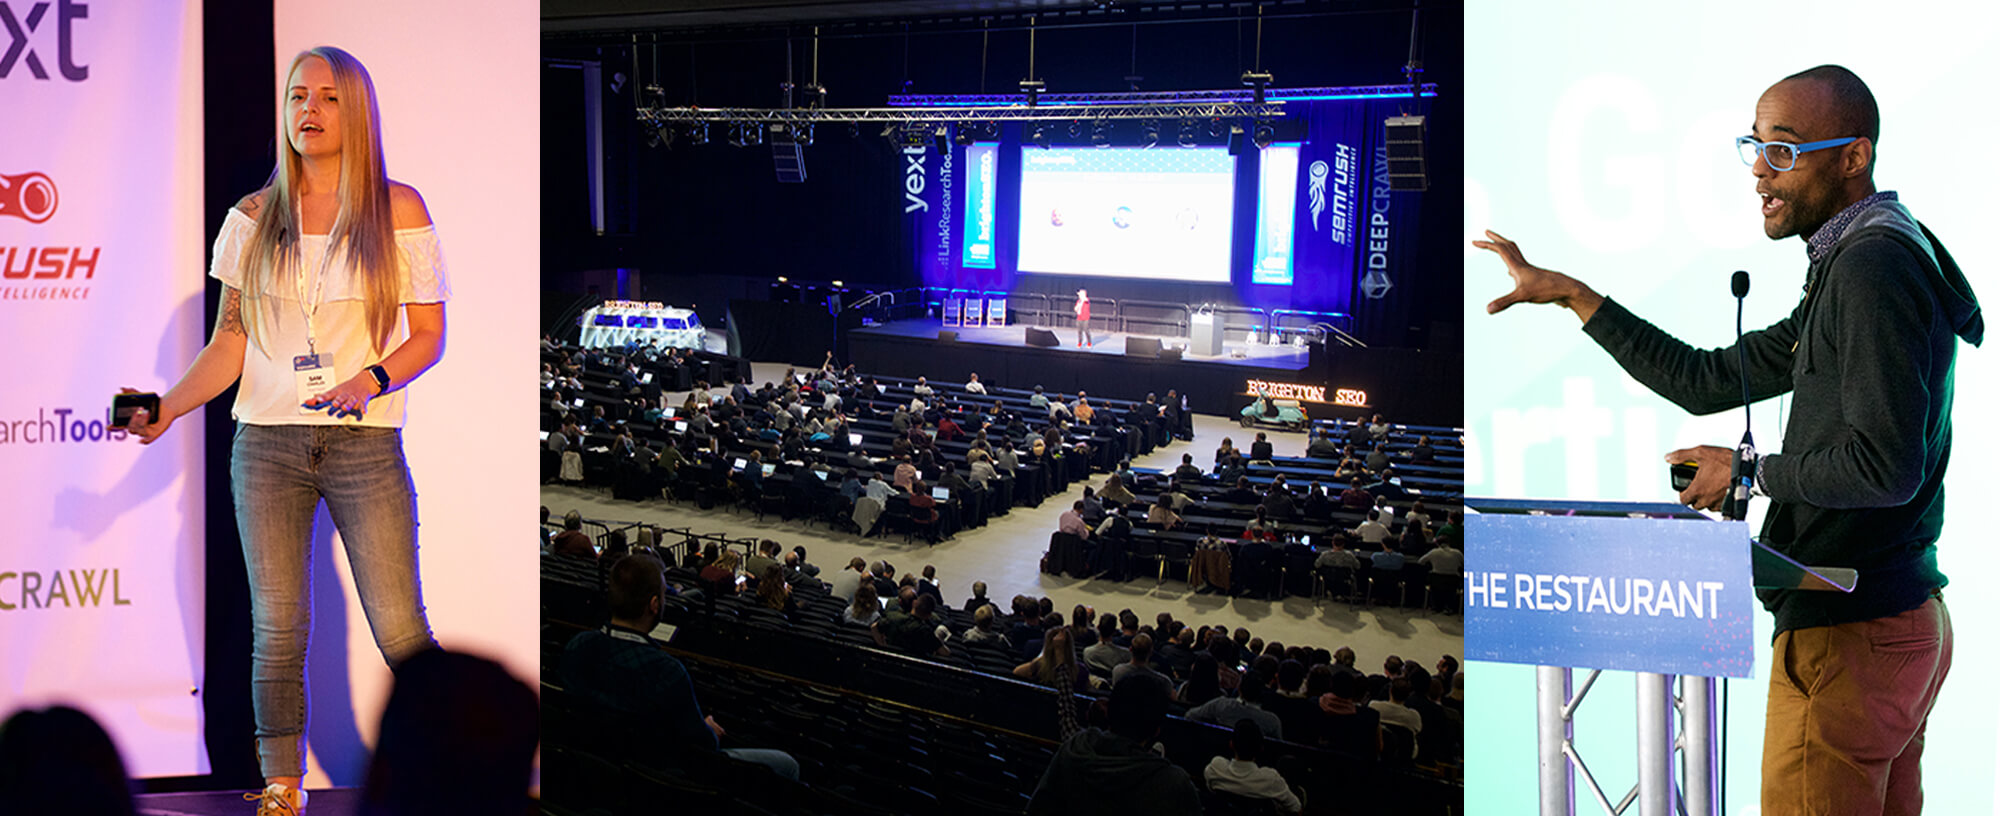 Brightonseo images